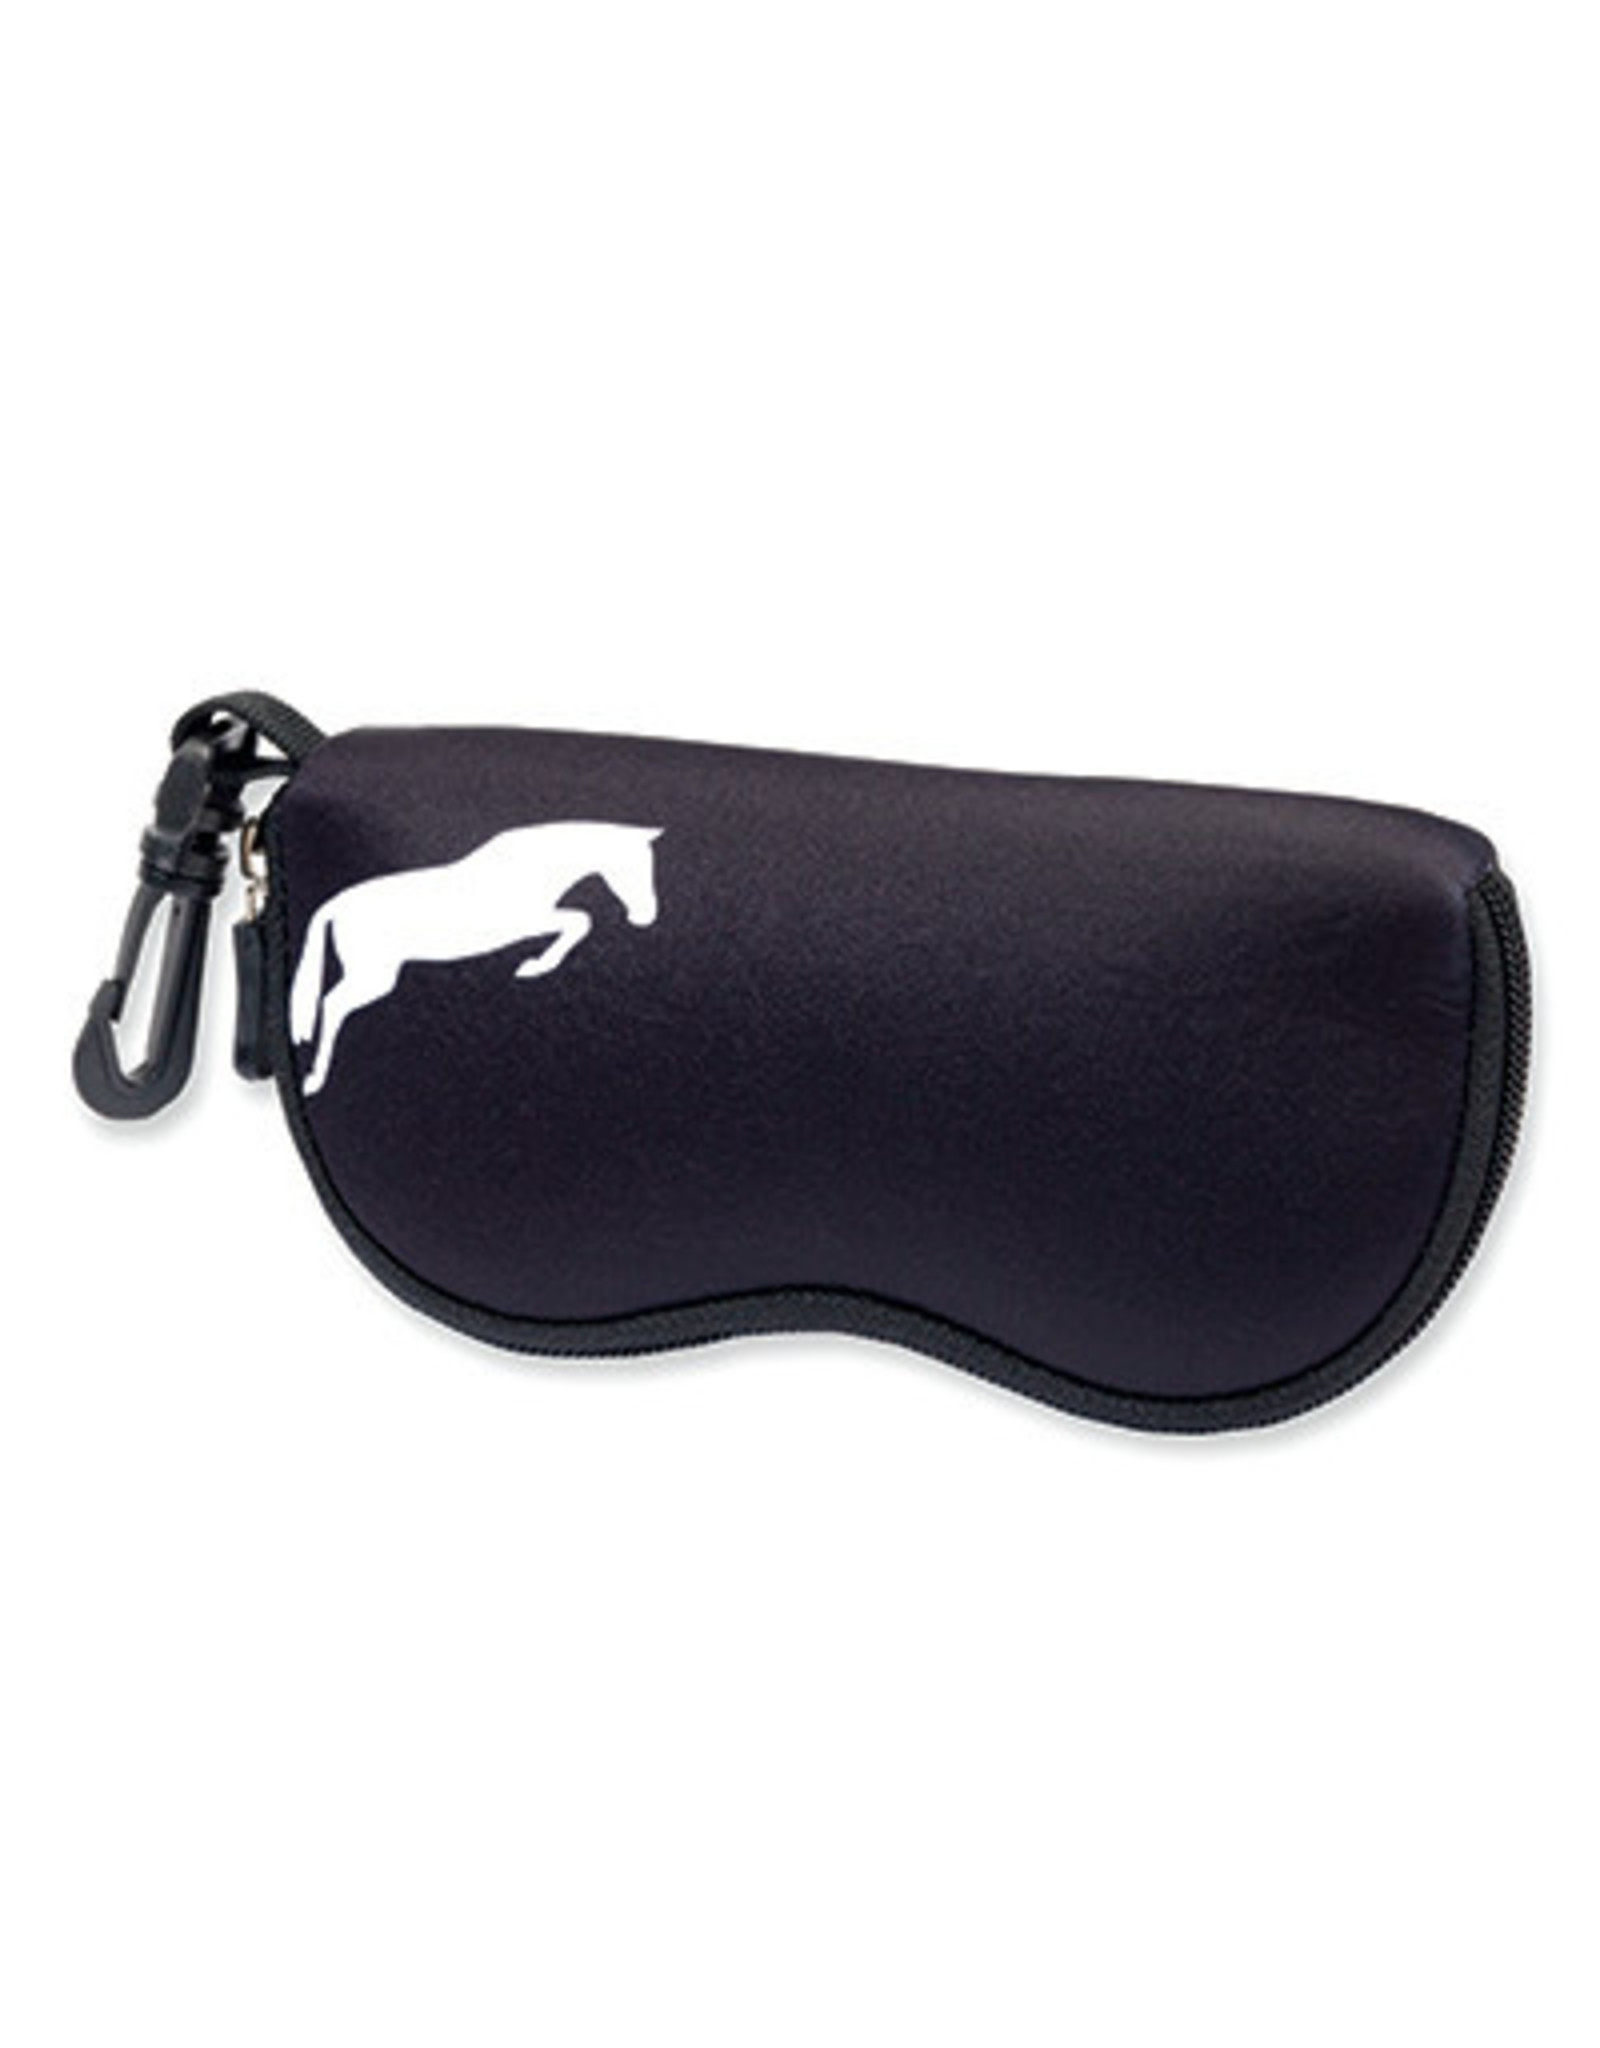 Sunglasses Case Neoprene Black w/ Jumper in White